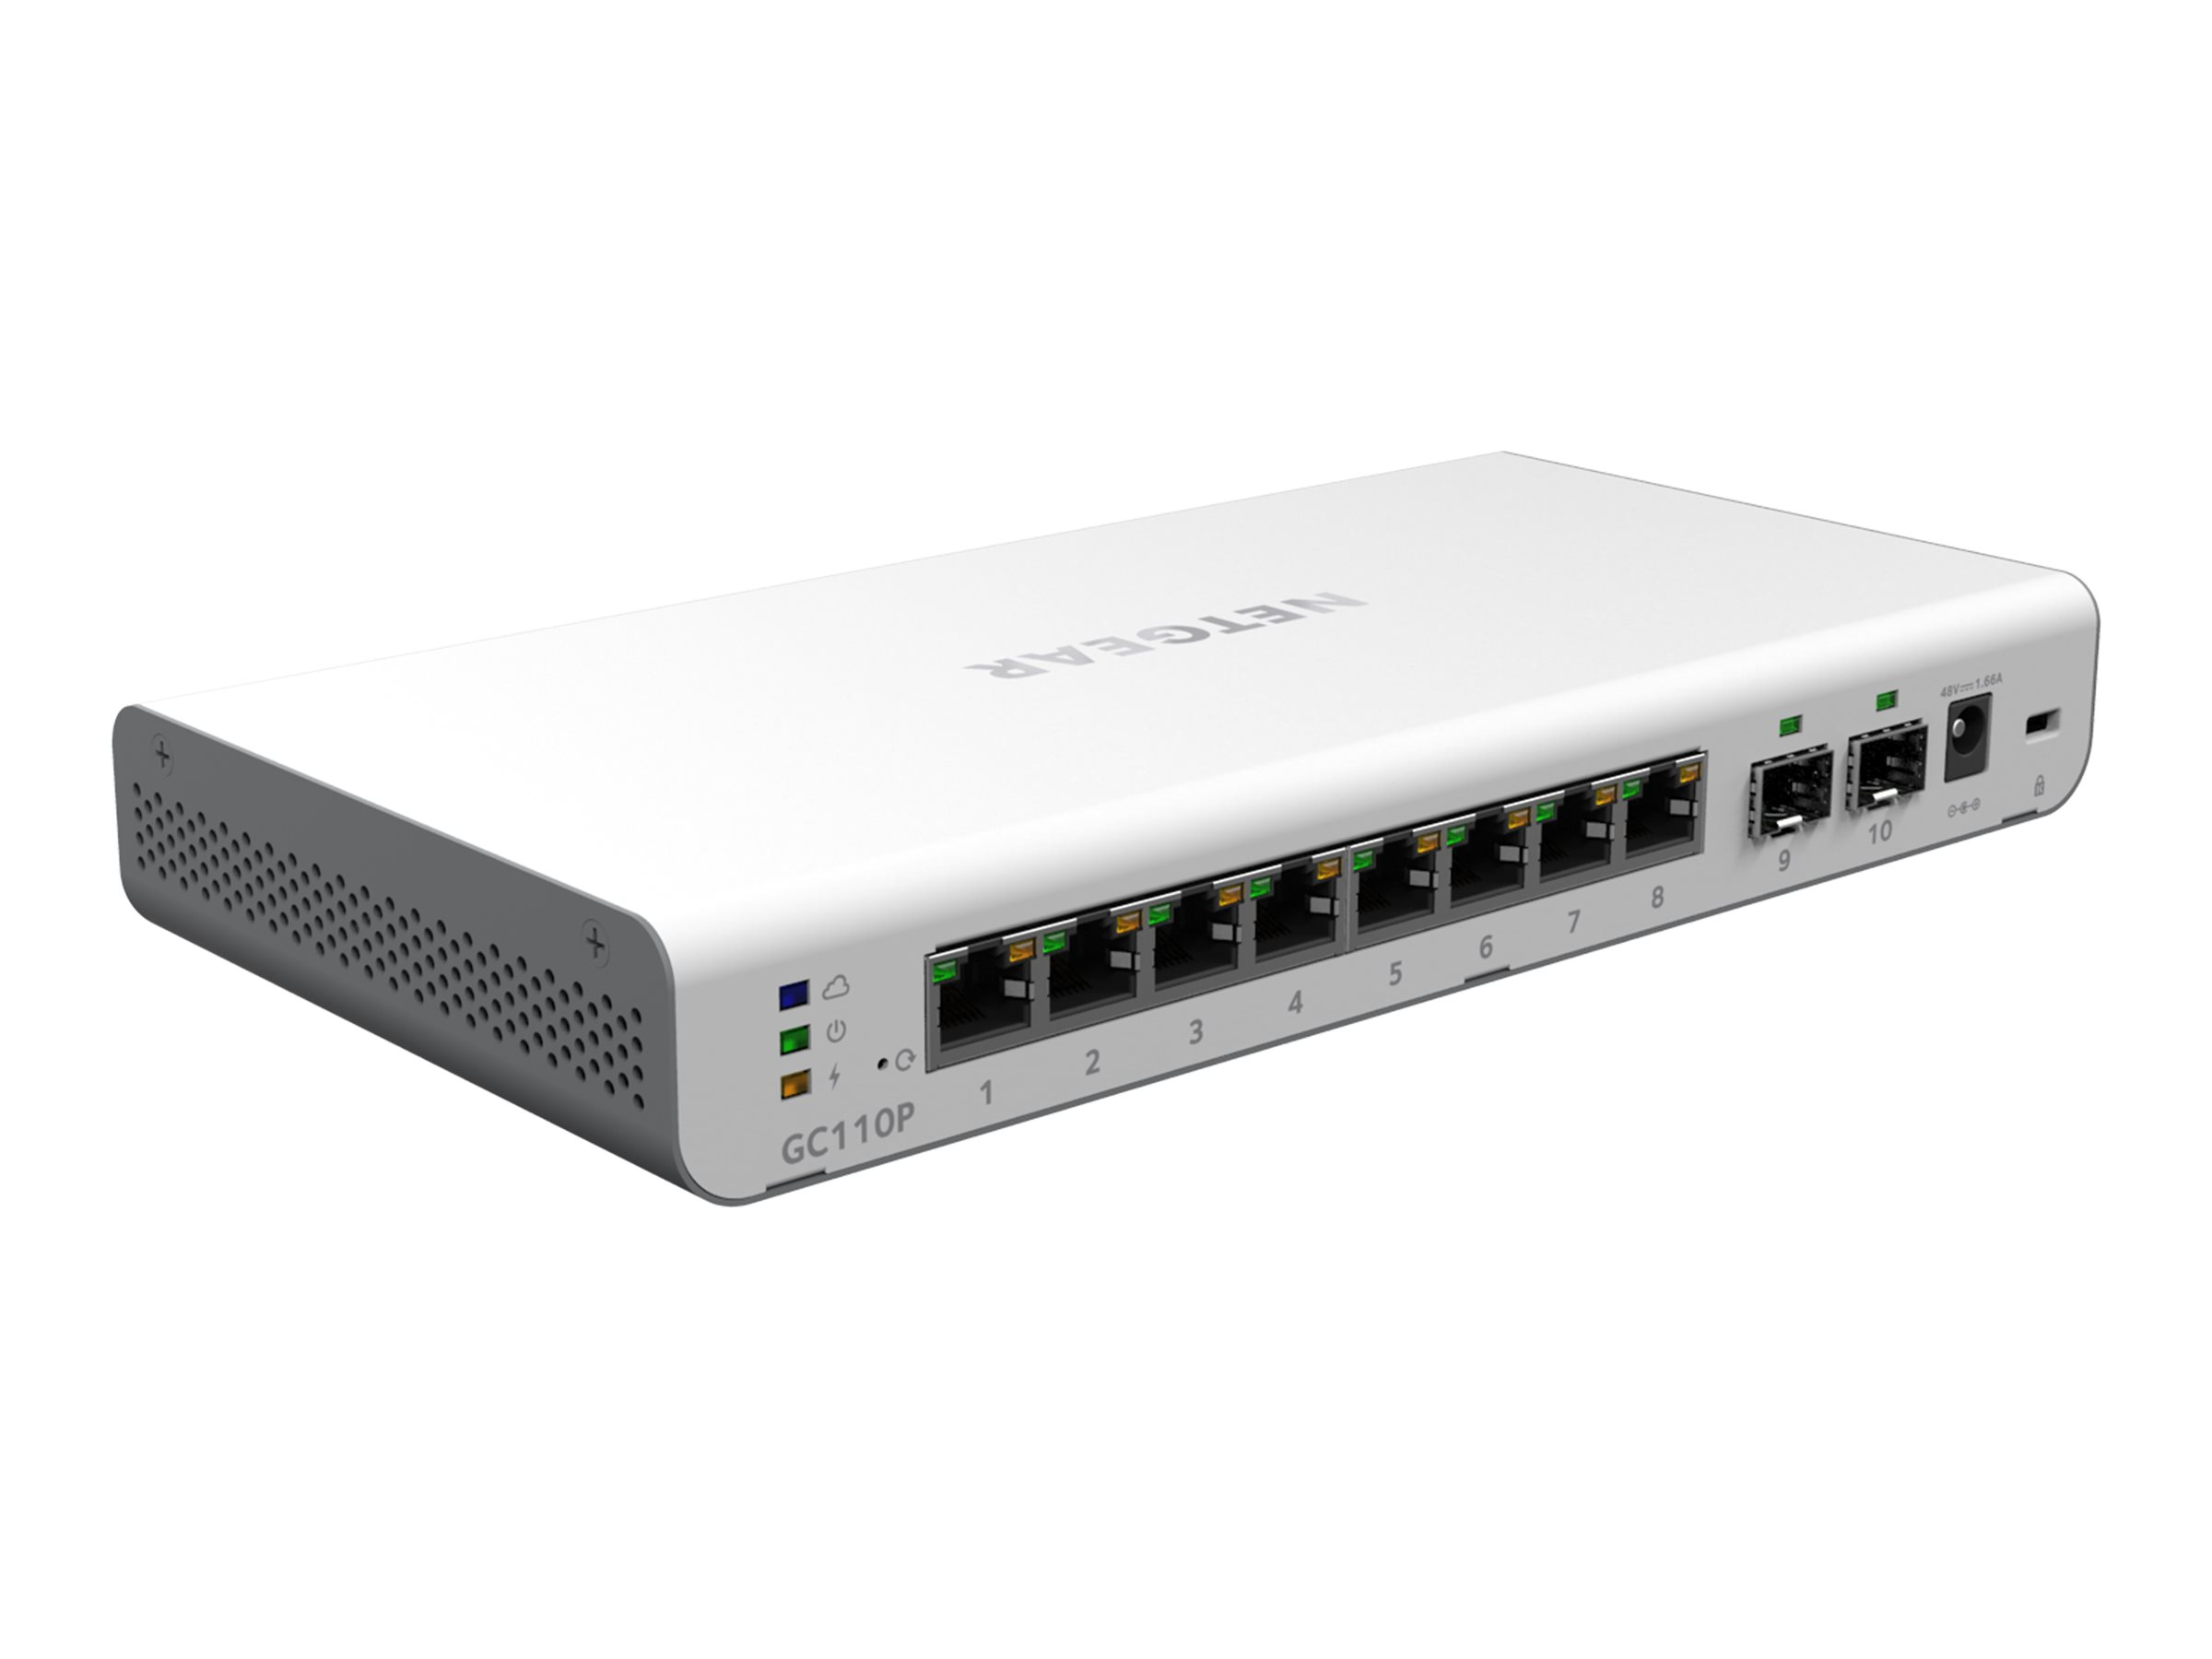 Netgear Insight Gc110p Switch 10 Ports Smart 100nas Diagram Router Modem Also Nutanix Port On Networking Need Help Contact Your Zones Account Executive Or Call 8004089663